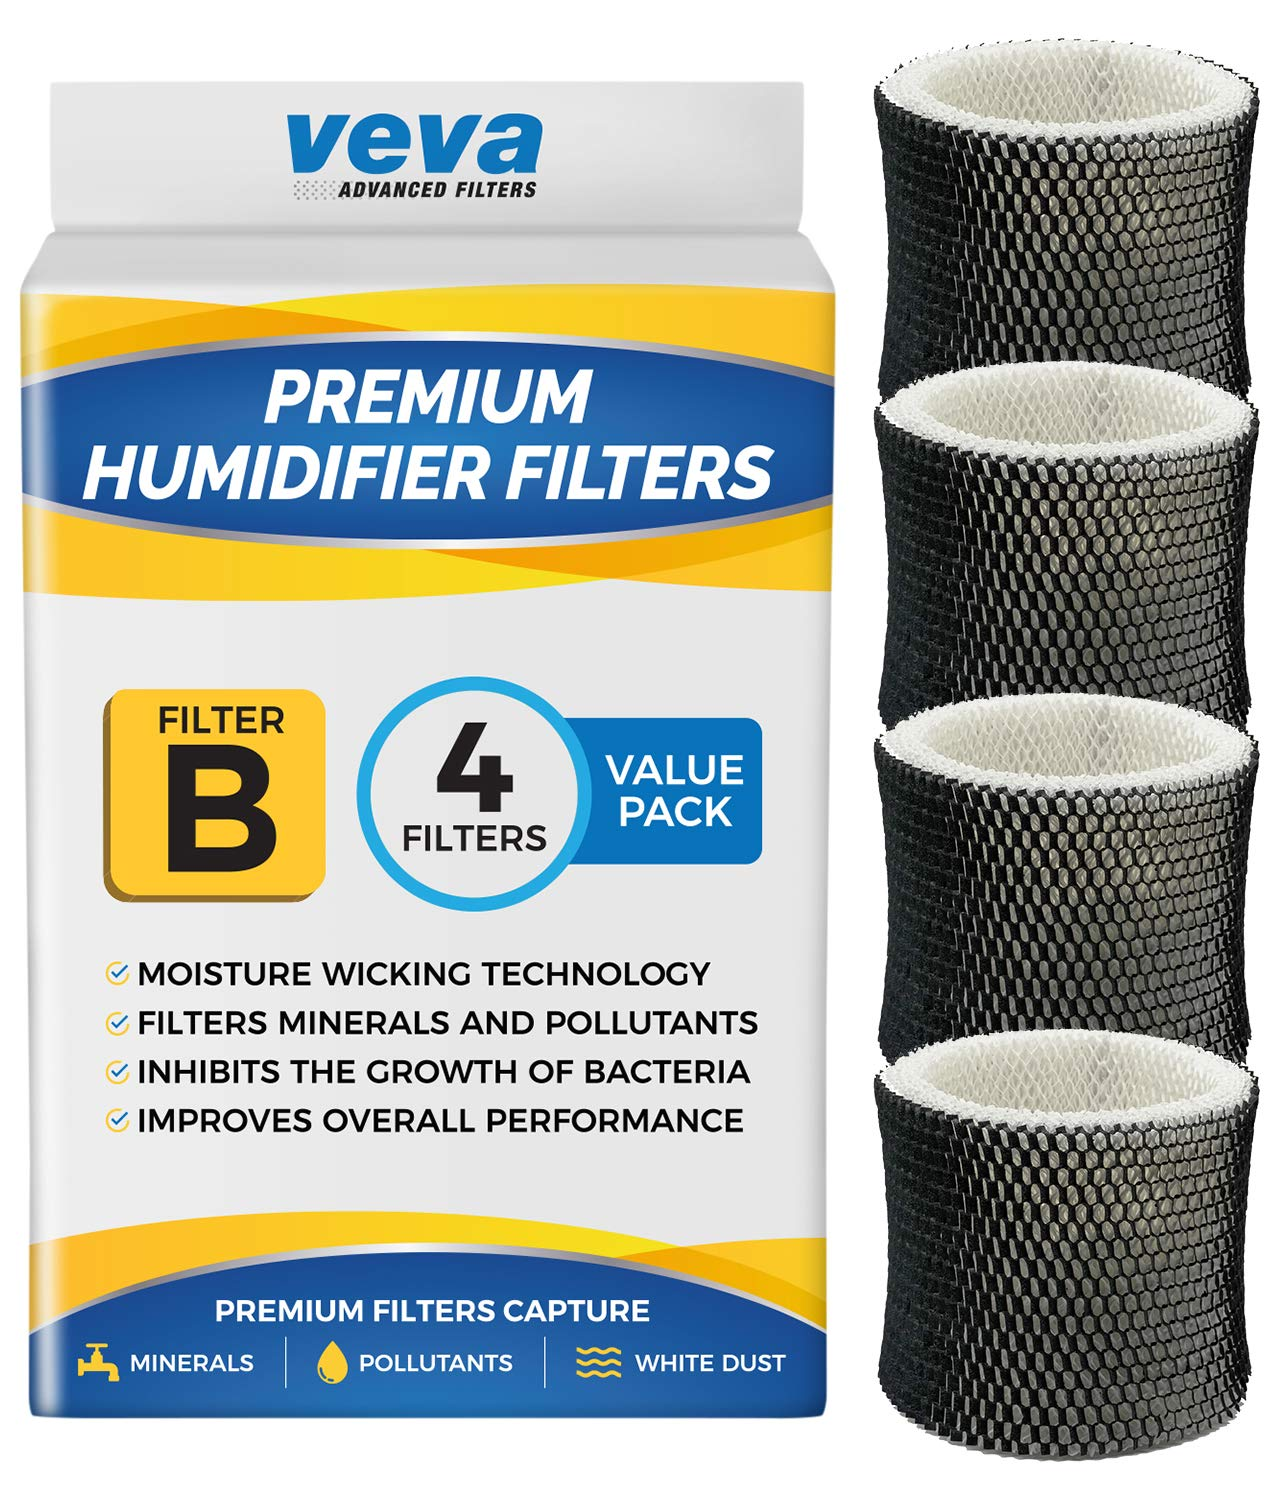 VEVA 4 Pack Premium Humidifier Filters Replacement for Holmes Filter B, HWF64, and Other Sunbeam Bionaire Cool Mist Humidifiers by VEVA